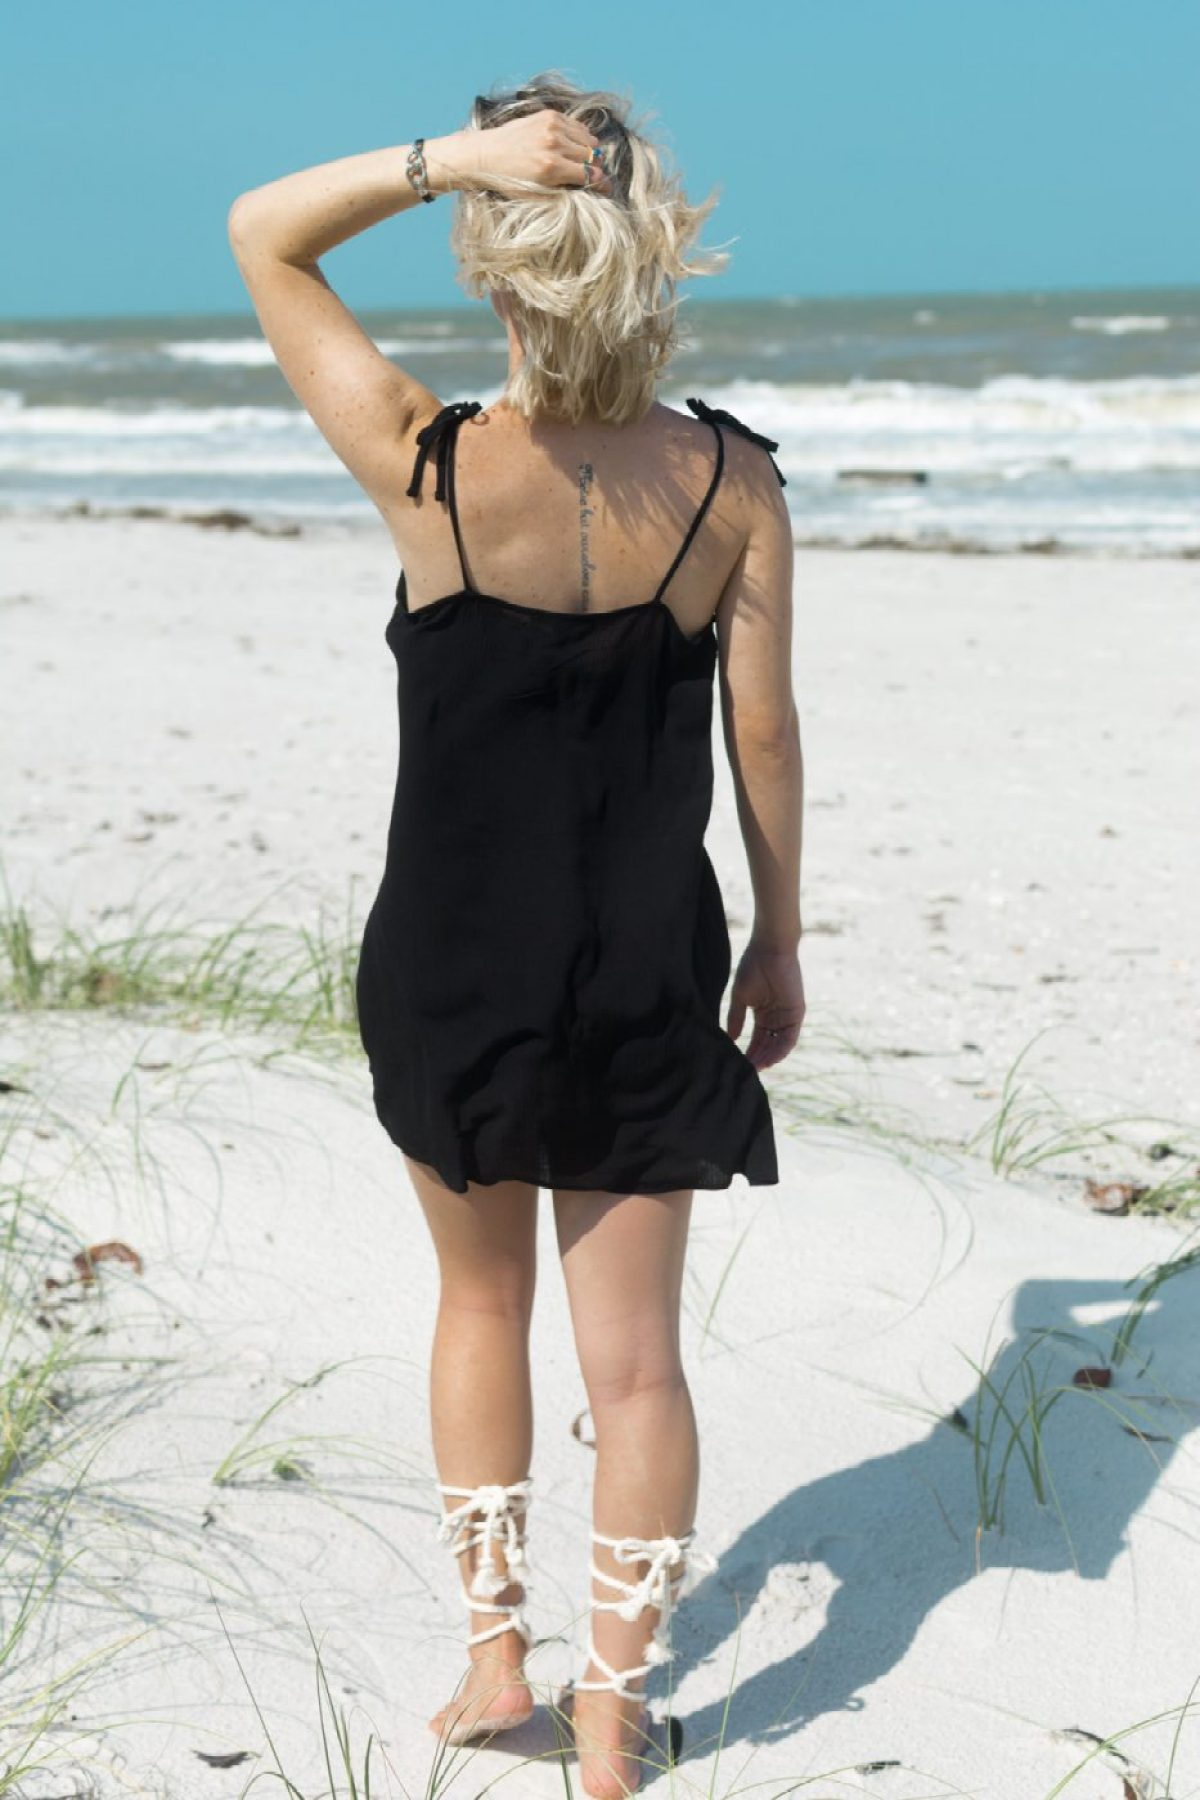 Forever 21 Black Dress worn by Jenny of Sweet Teal